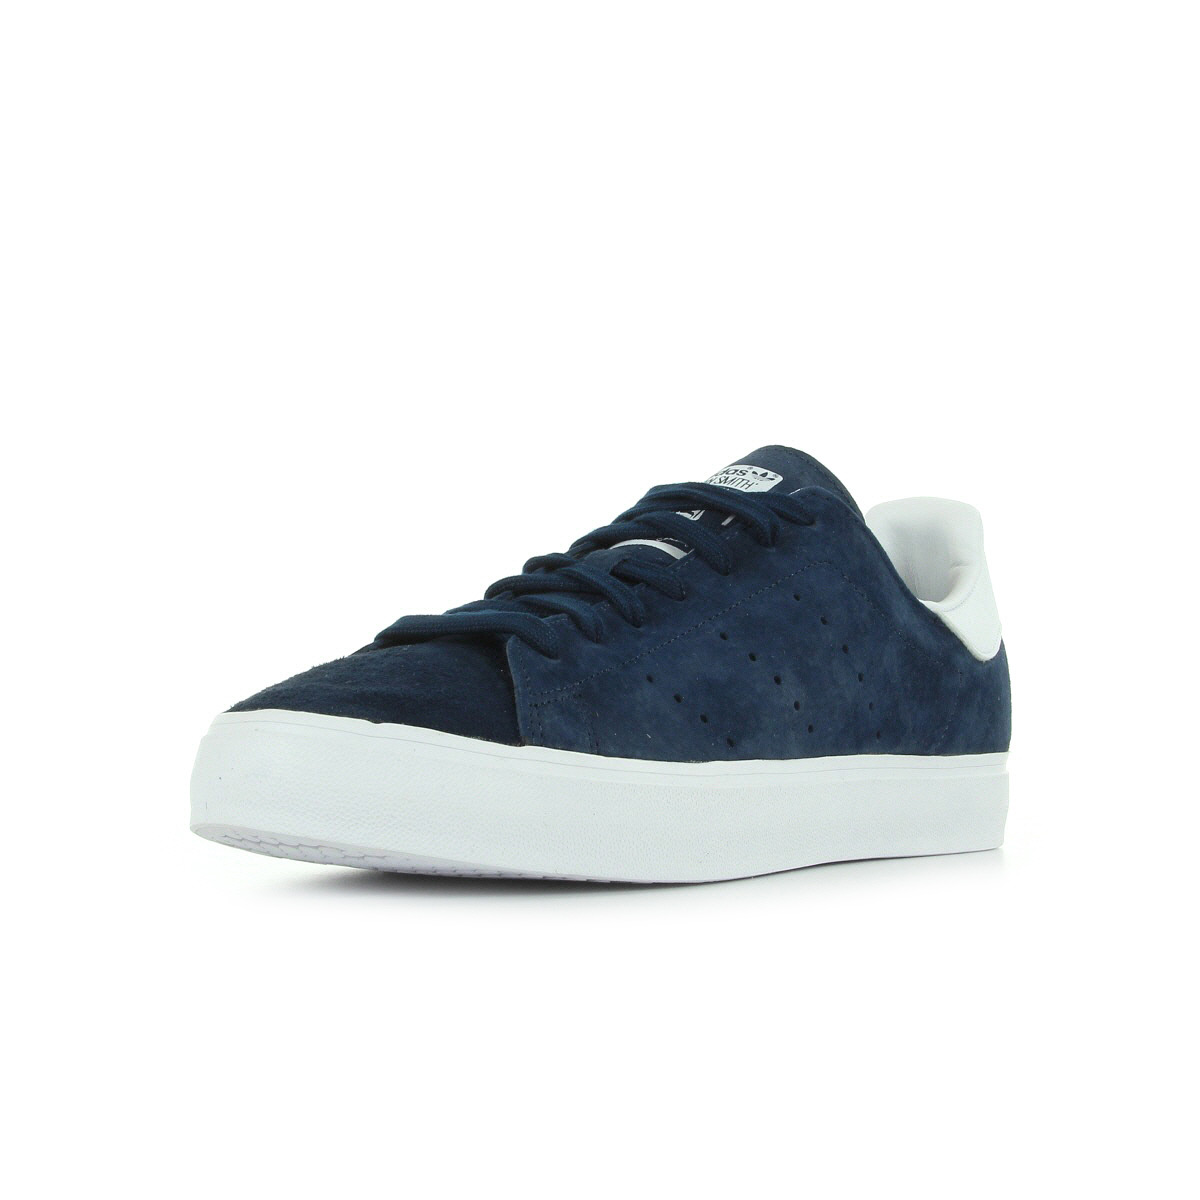 chaussures baskets adidas homme stan smith vulc taille bleu marine bleue cuir ebay. Black Bedroom Furniture Sets. Home Design Ideas